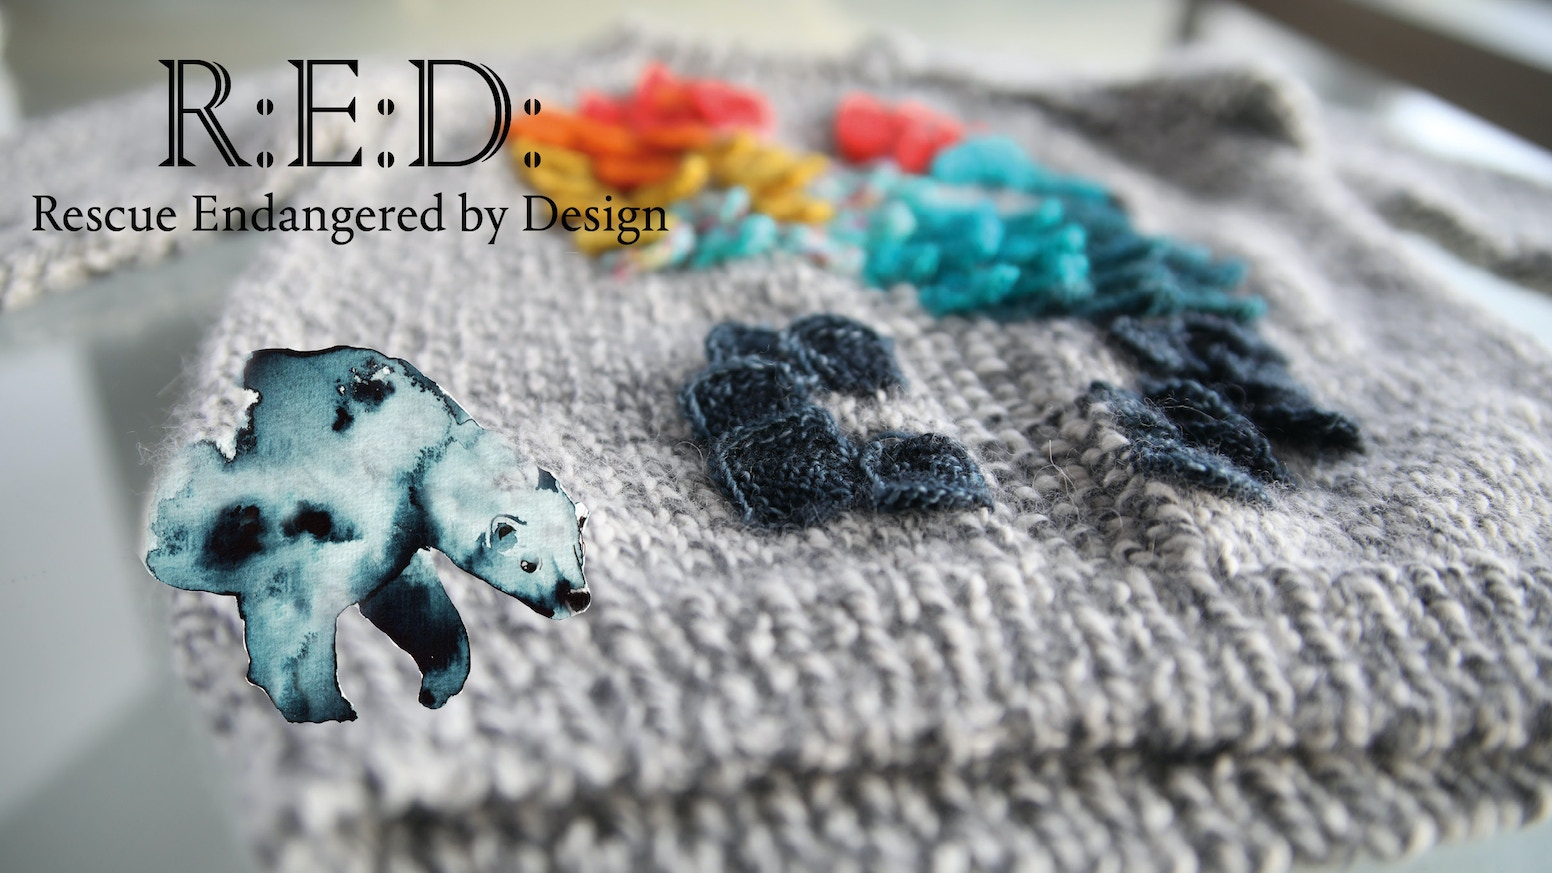 R:E:D: A book to raise awareness of endangered species through design. Knitted jumpers with animal motifs will start a wave of love.